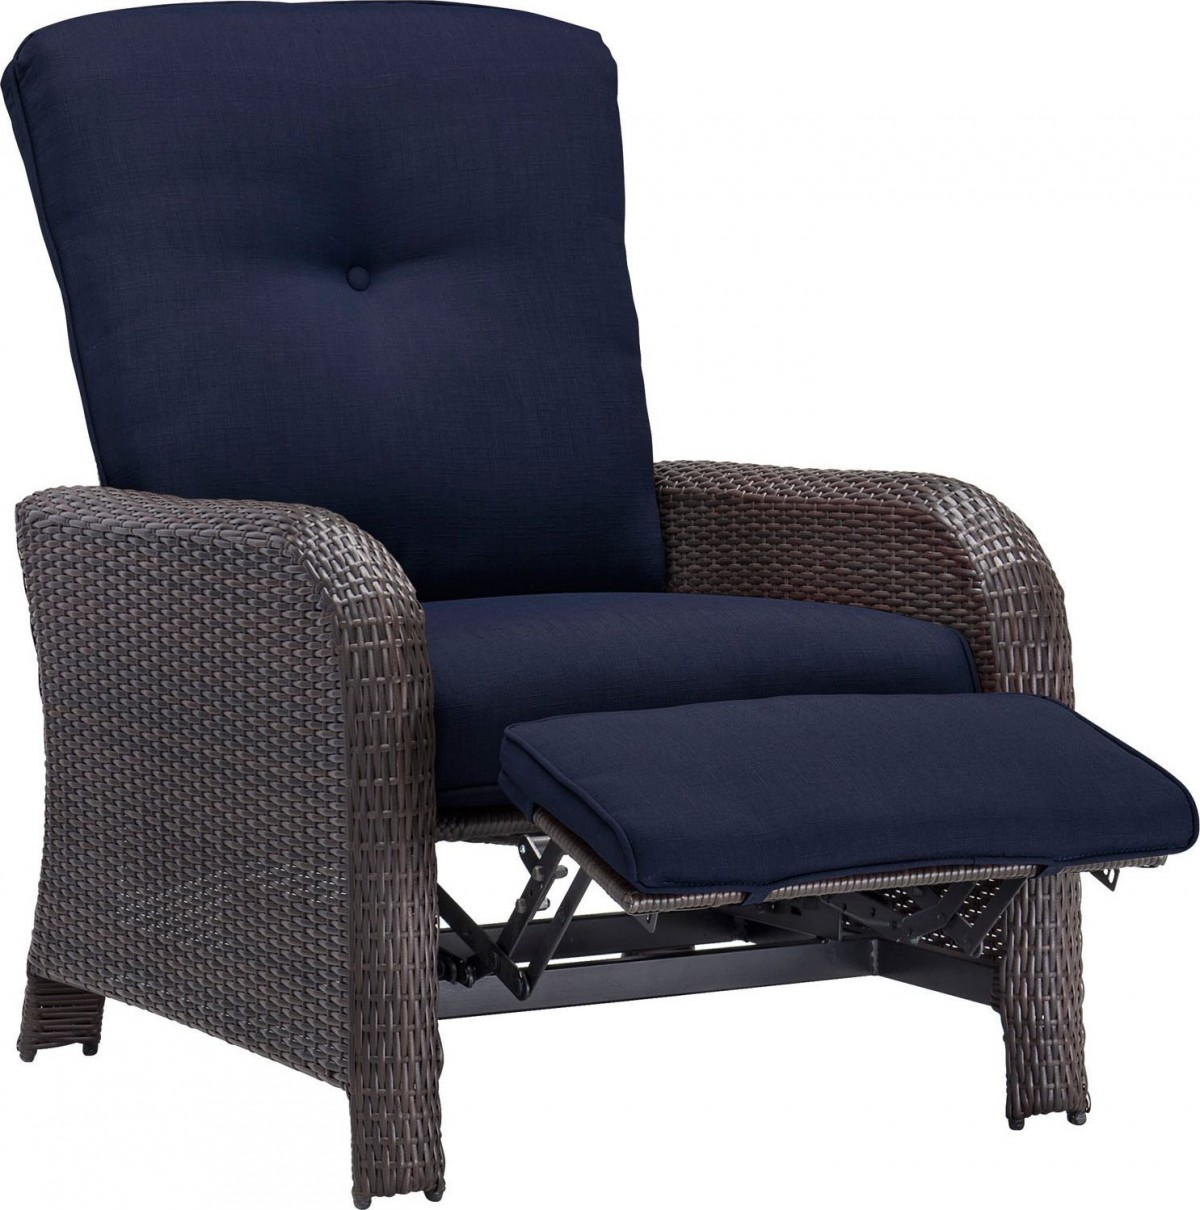 wicker recliner chair high for baby boy hanover strathmere luxury outdoor